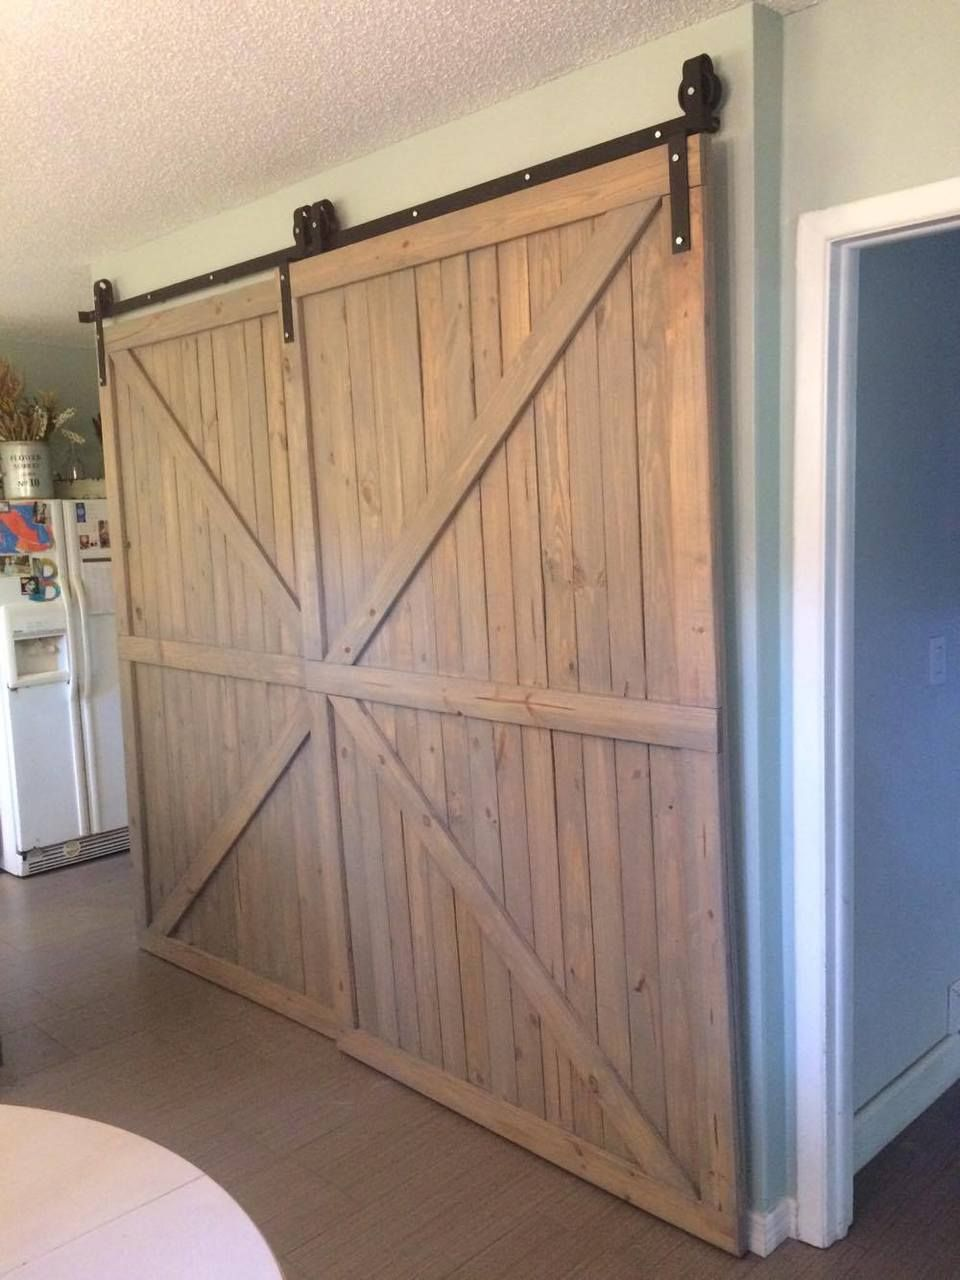 Single Track By Pass System For Two Doors On One Track Bypass Barn Door Diy Barn Door Barn Door